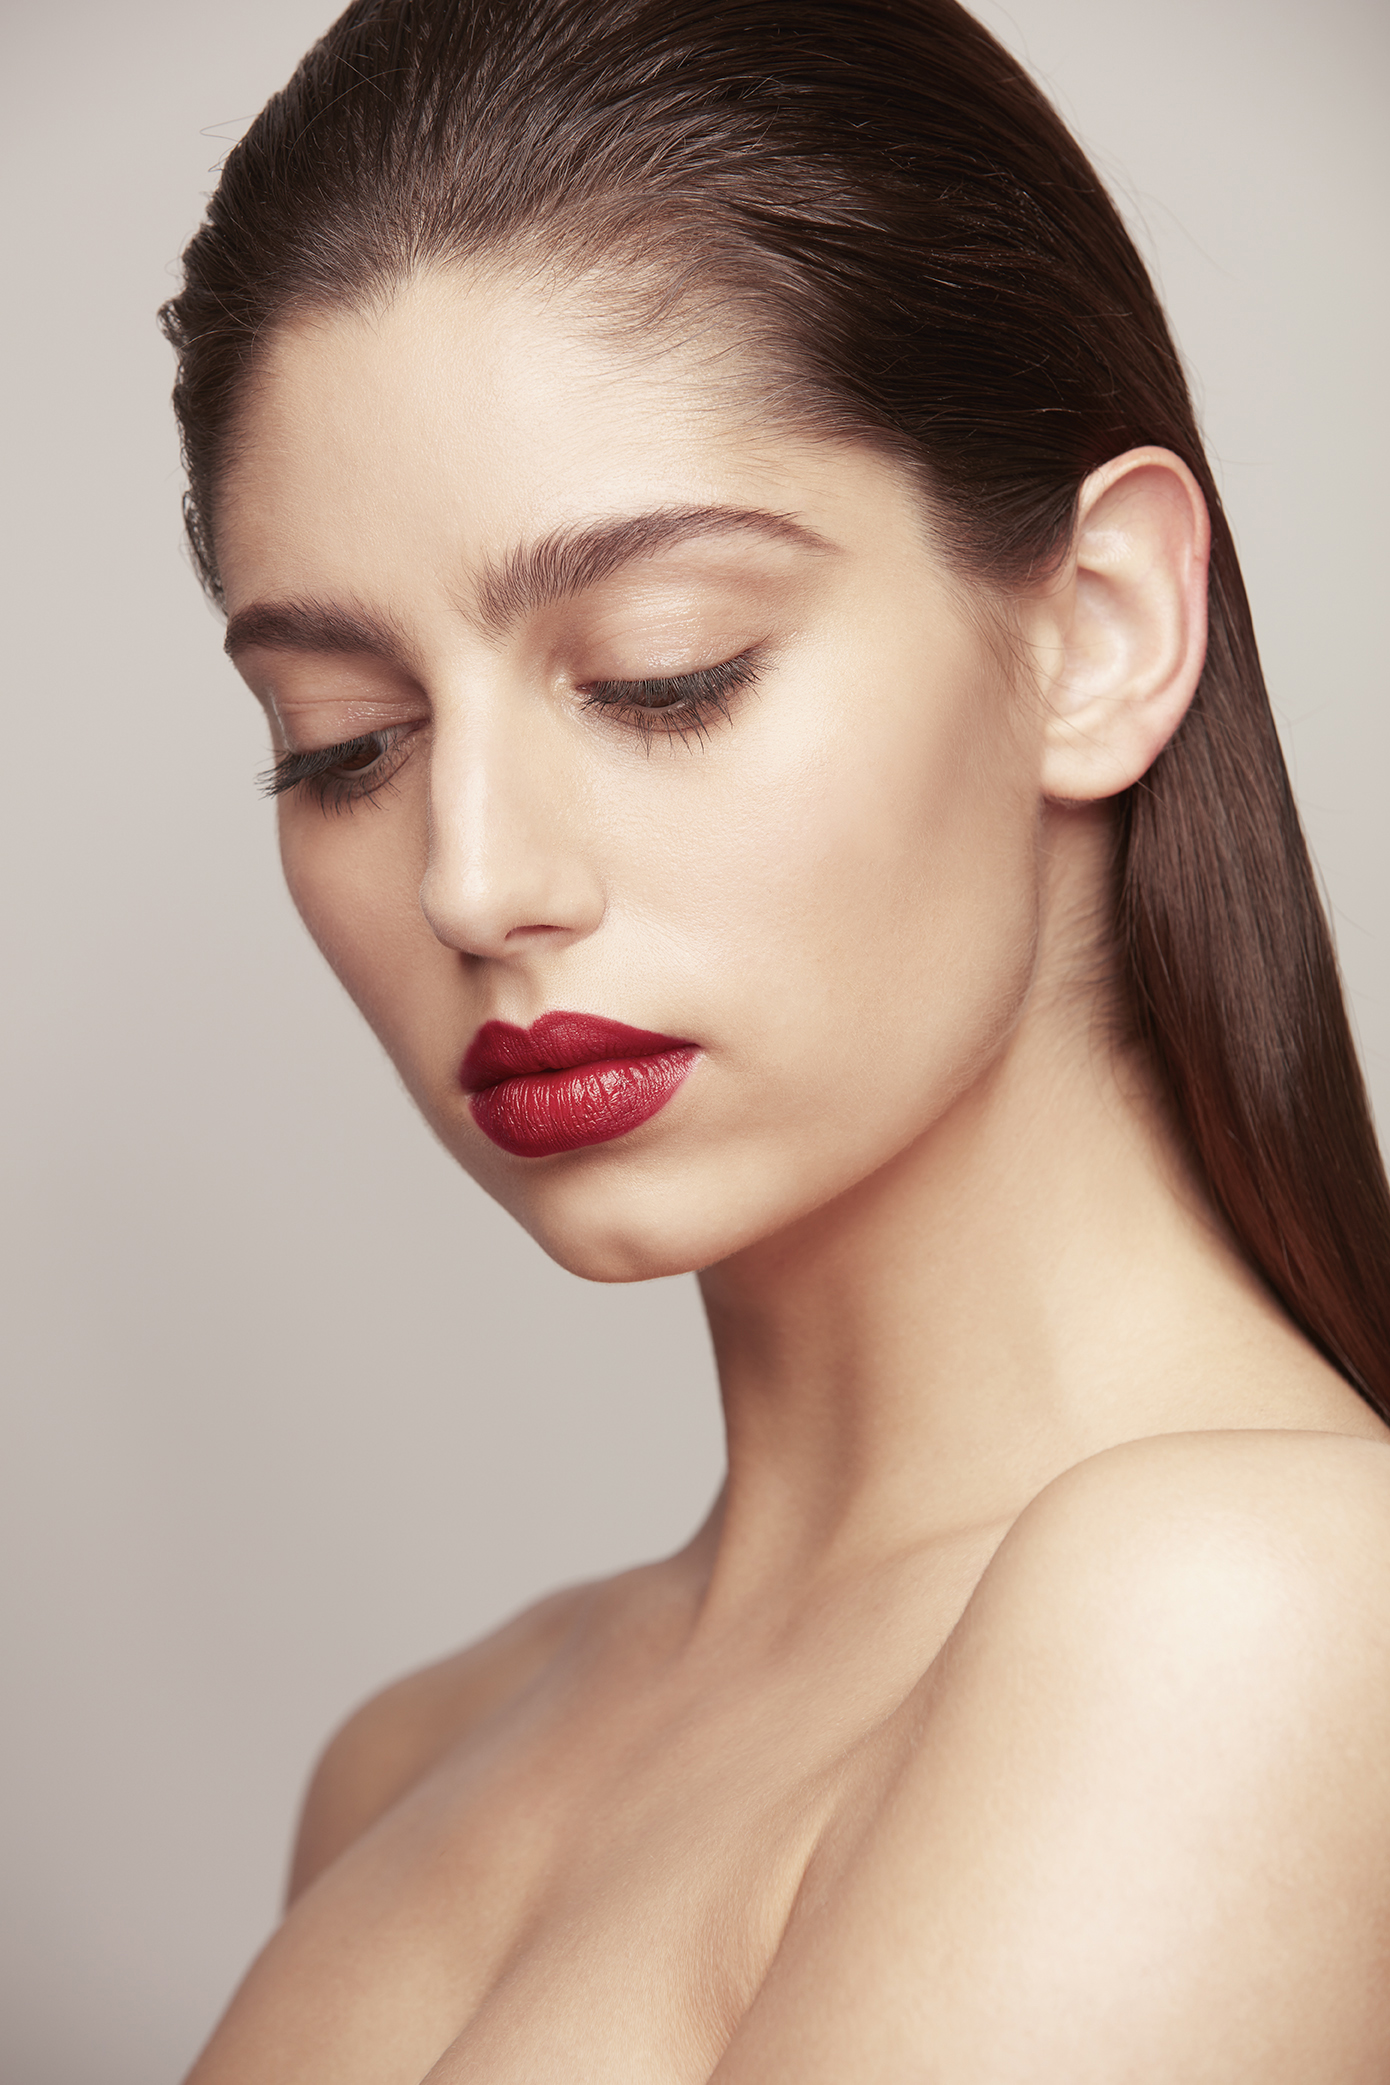 retouched woman with swept back hair and red lipstick